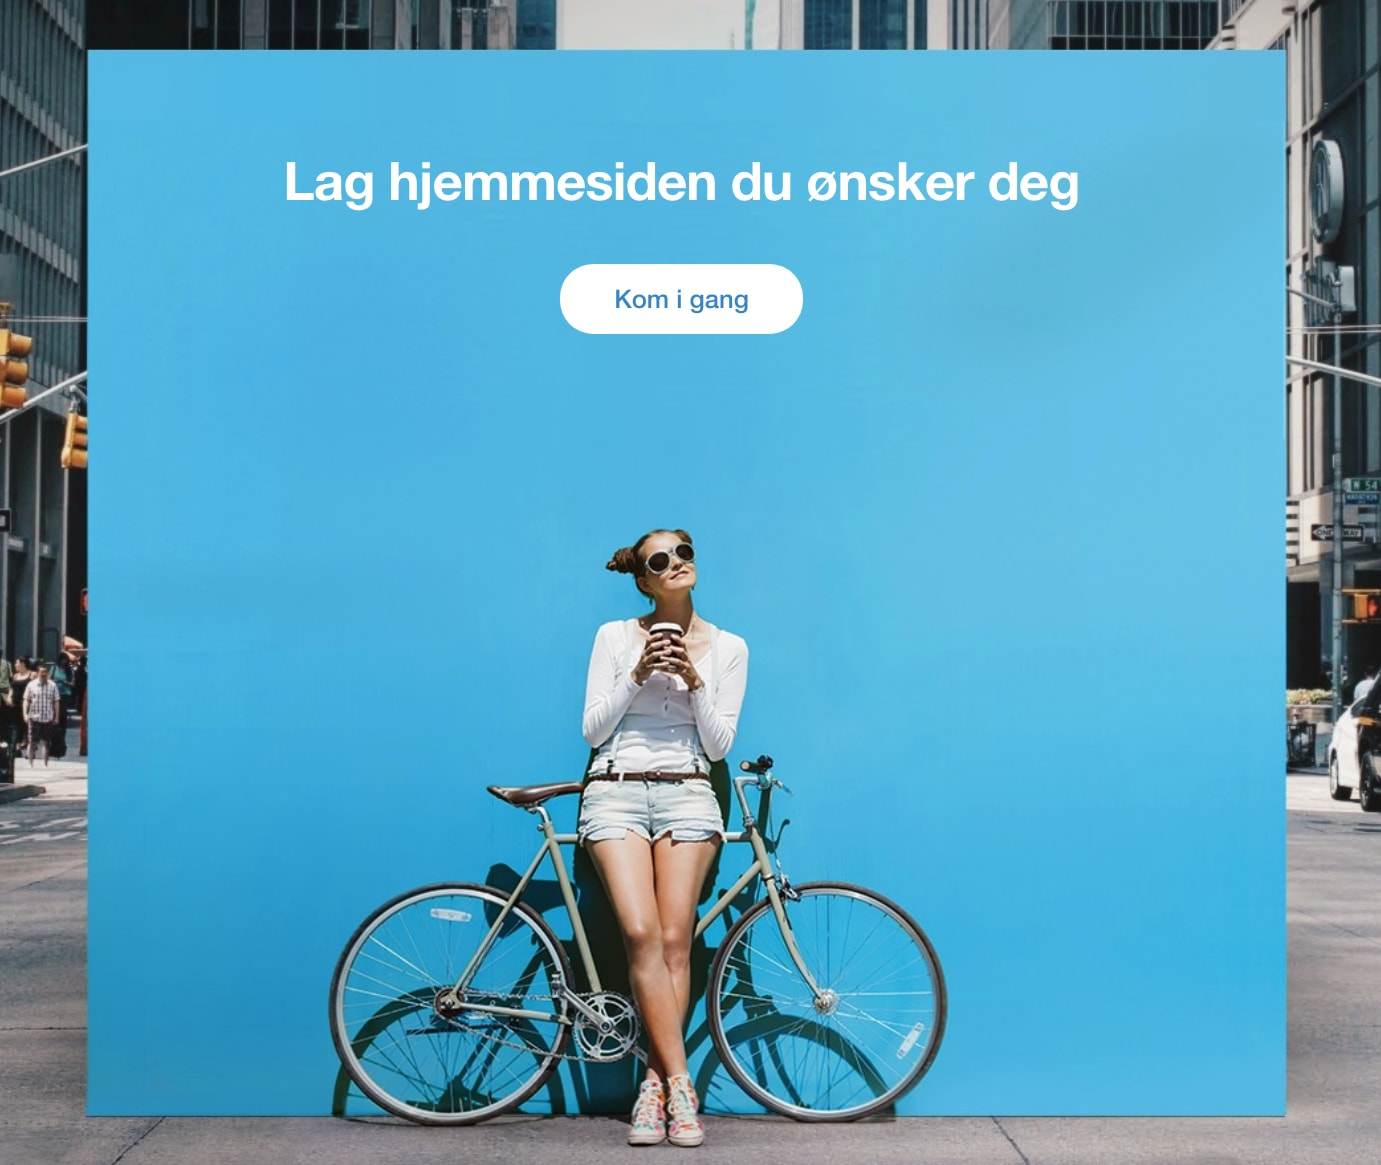 9 Enkle steg for å lage din Wix webside i 2020(+bilder)